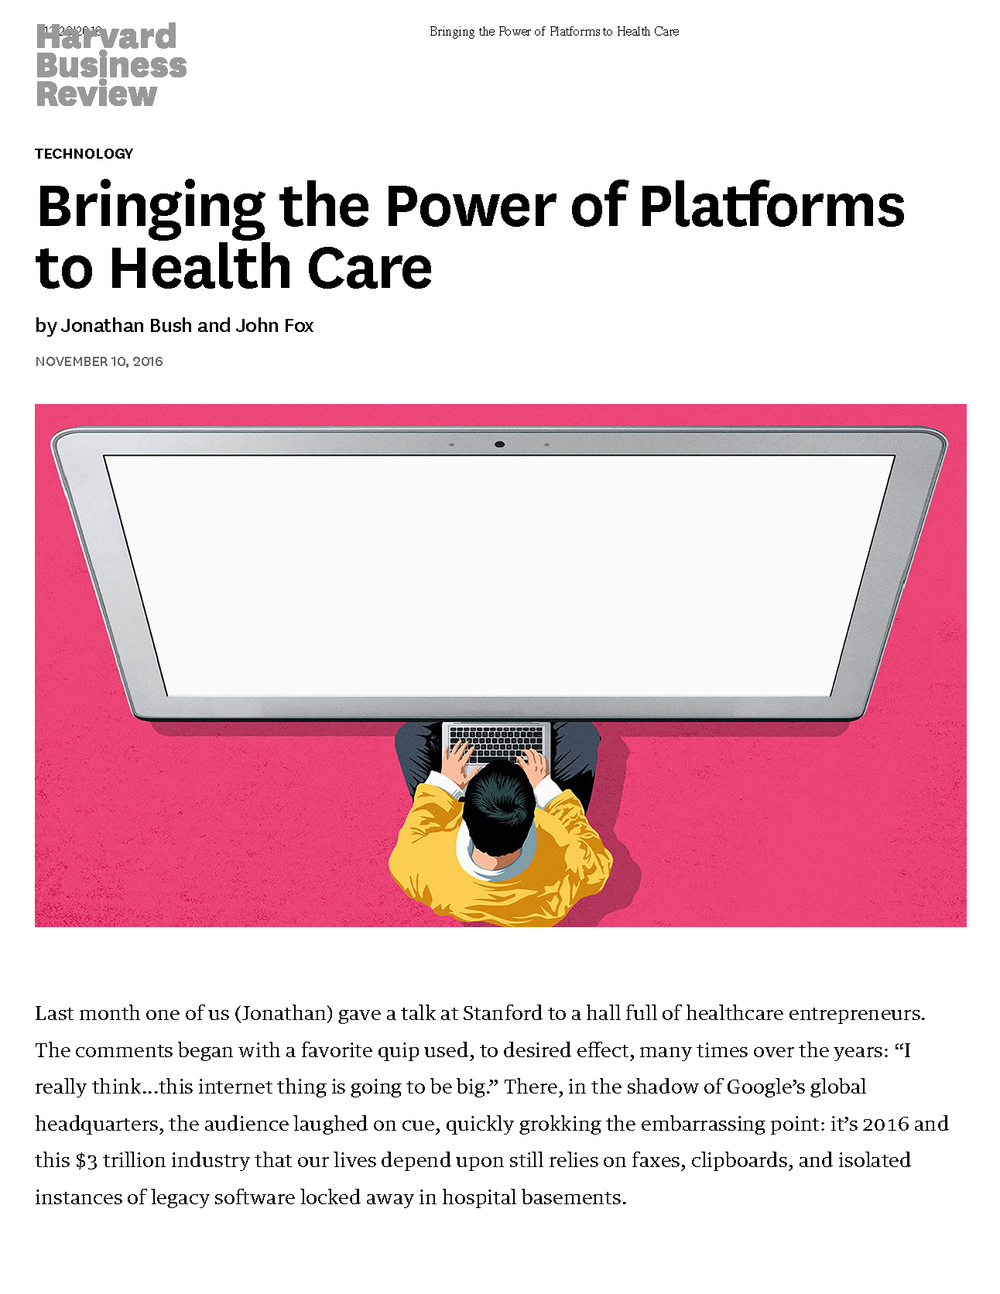 Bringing the Power of Platforms to Health Care_Page_1.png